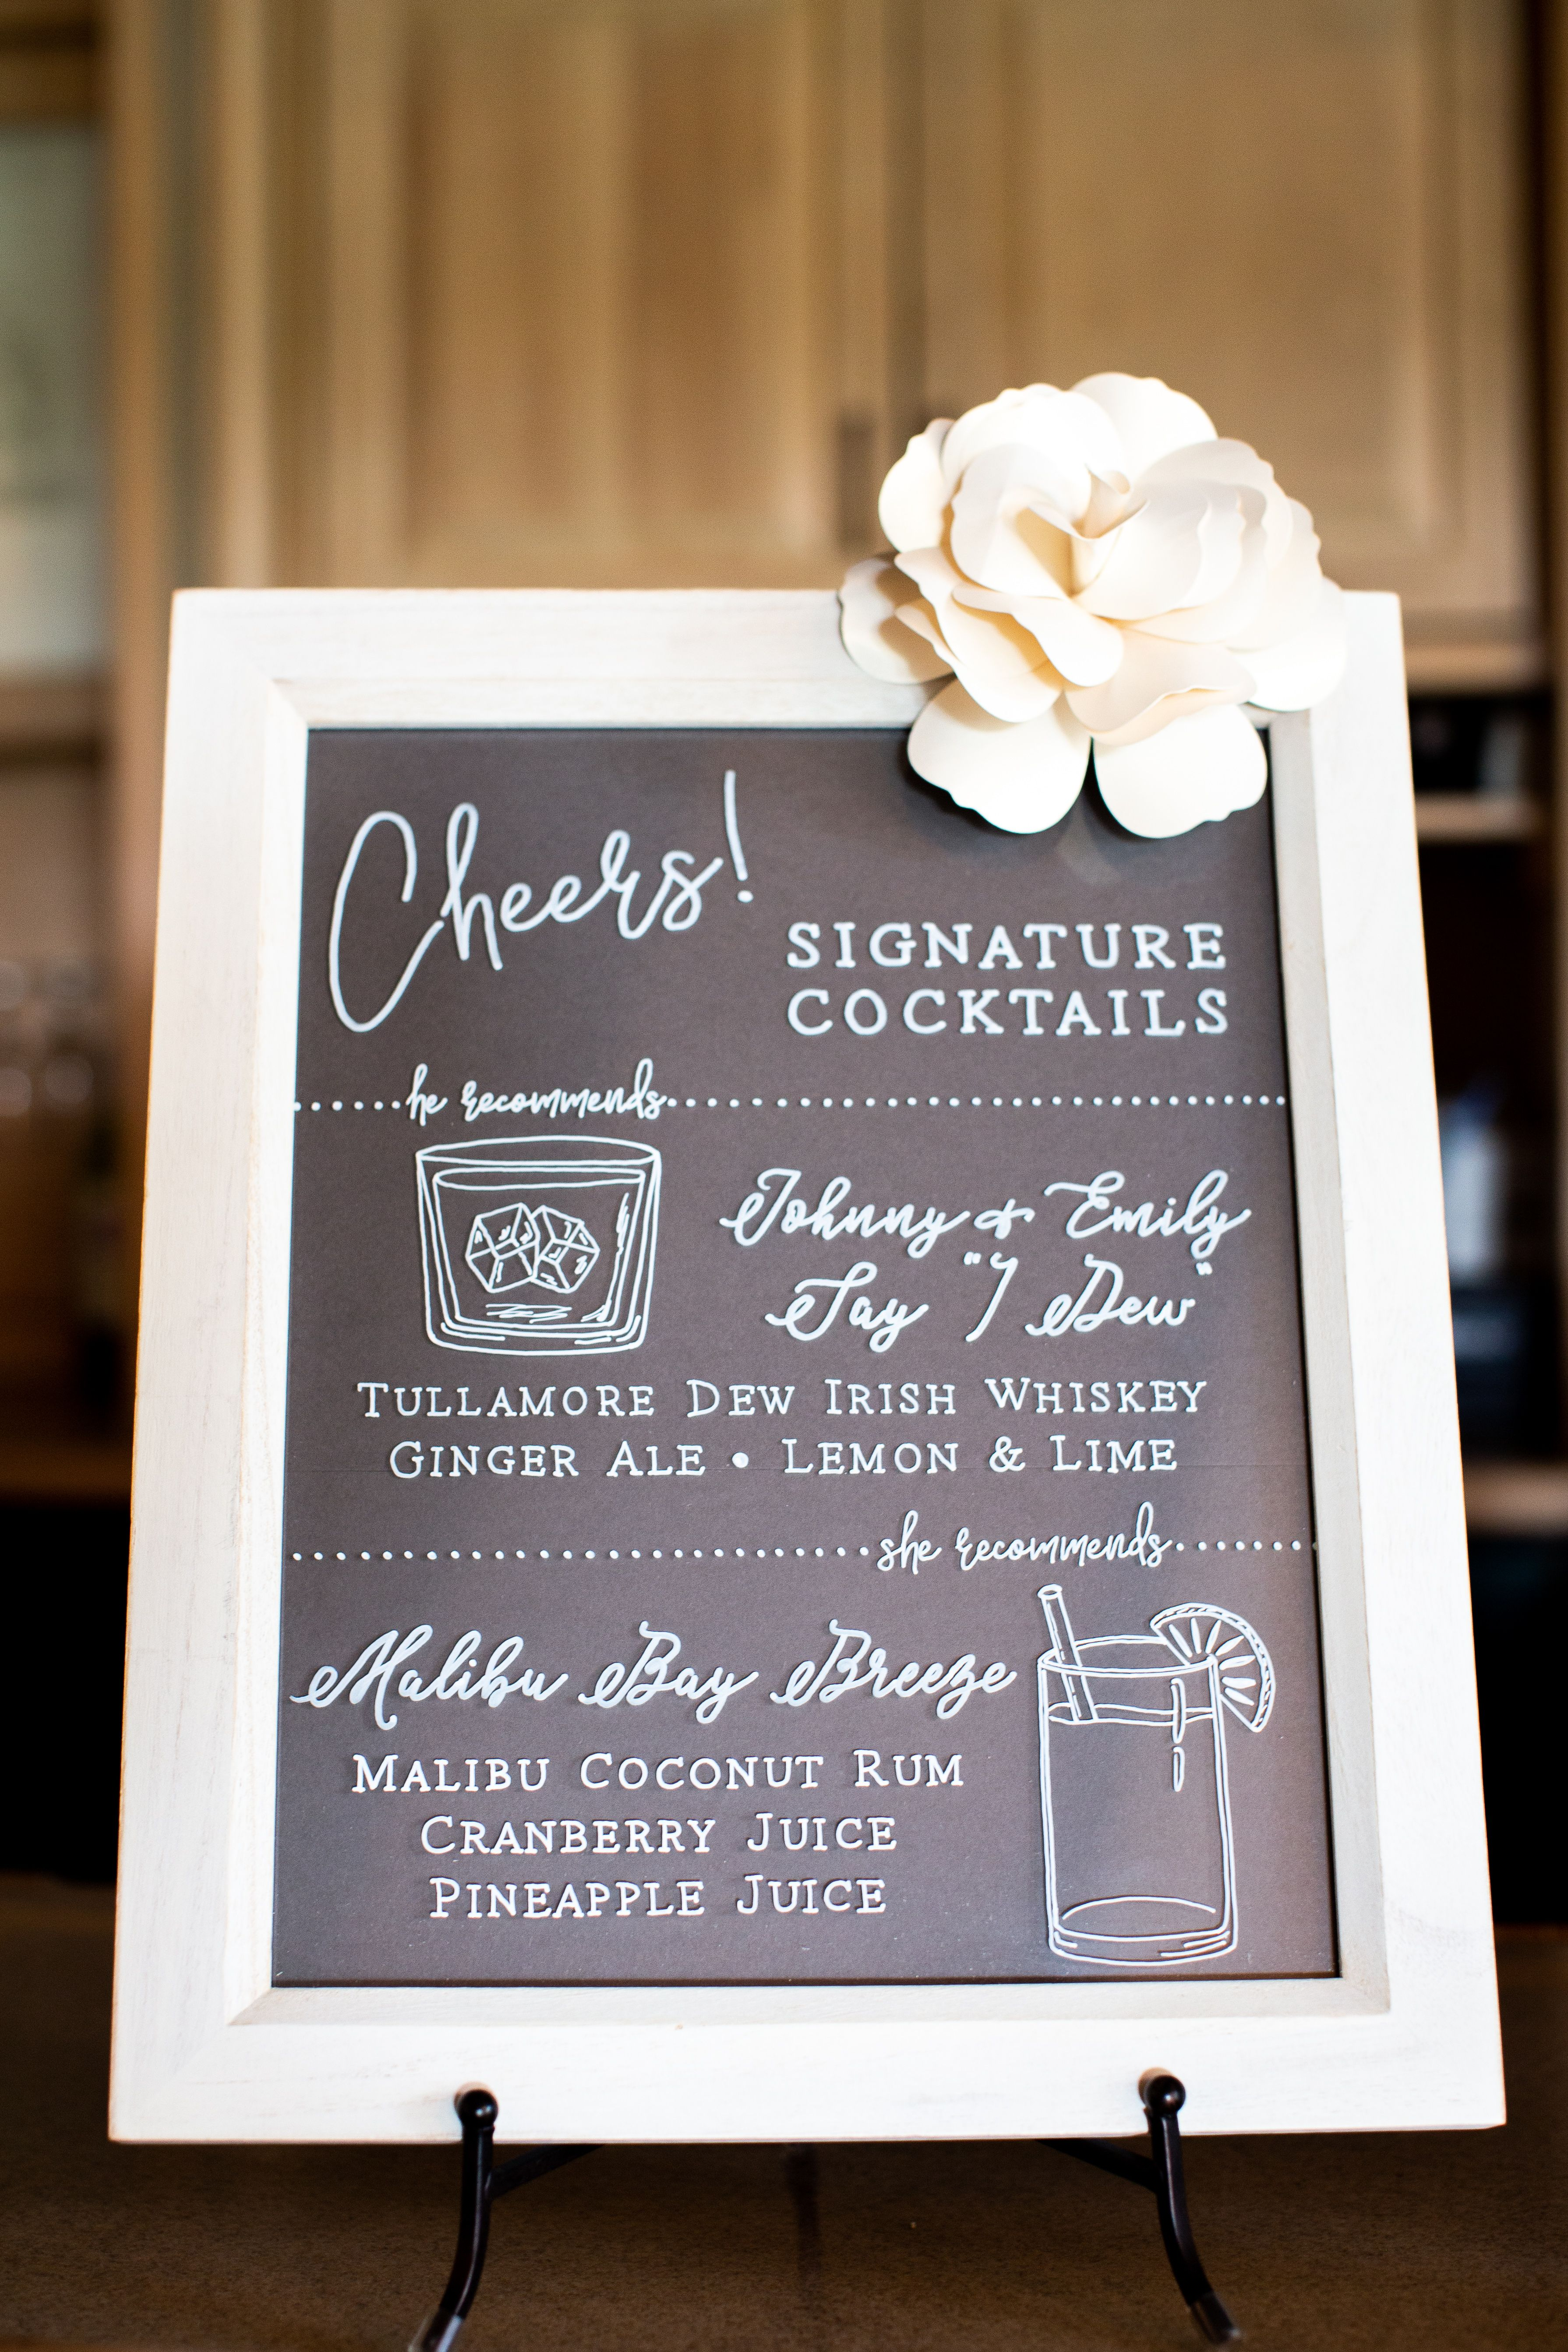 Cheers! This signature cocktail sign displays the bride